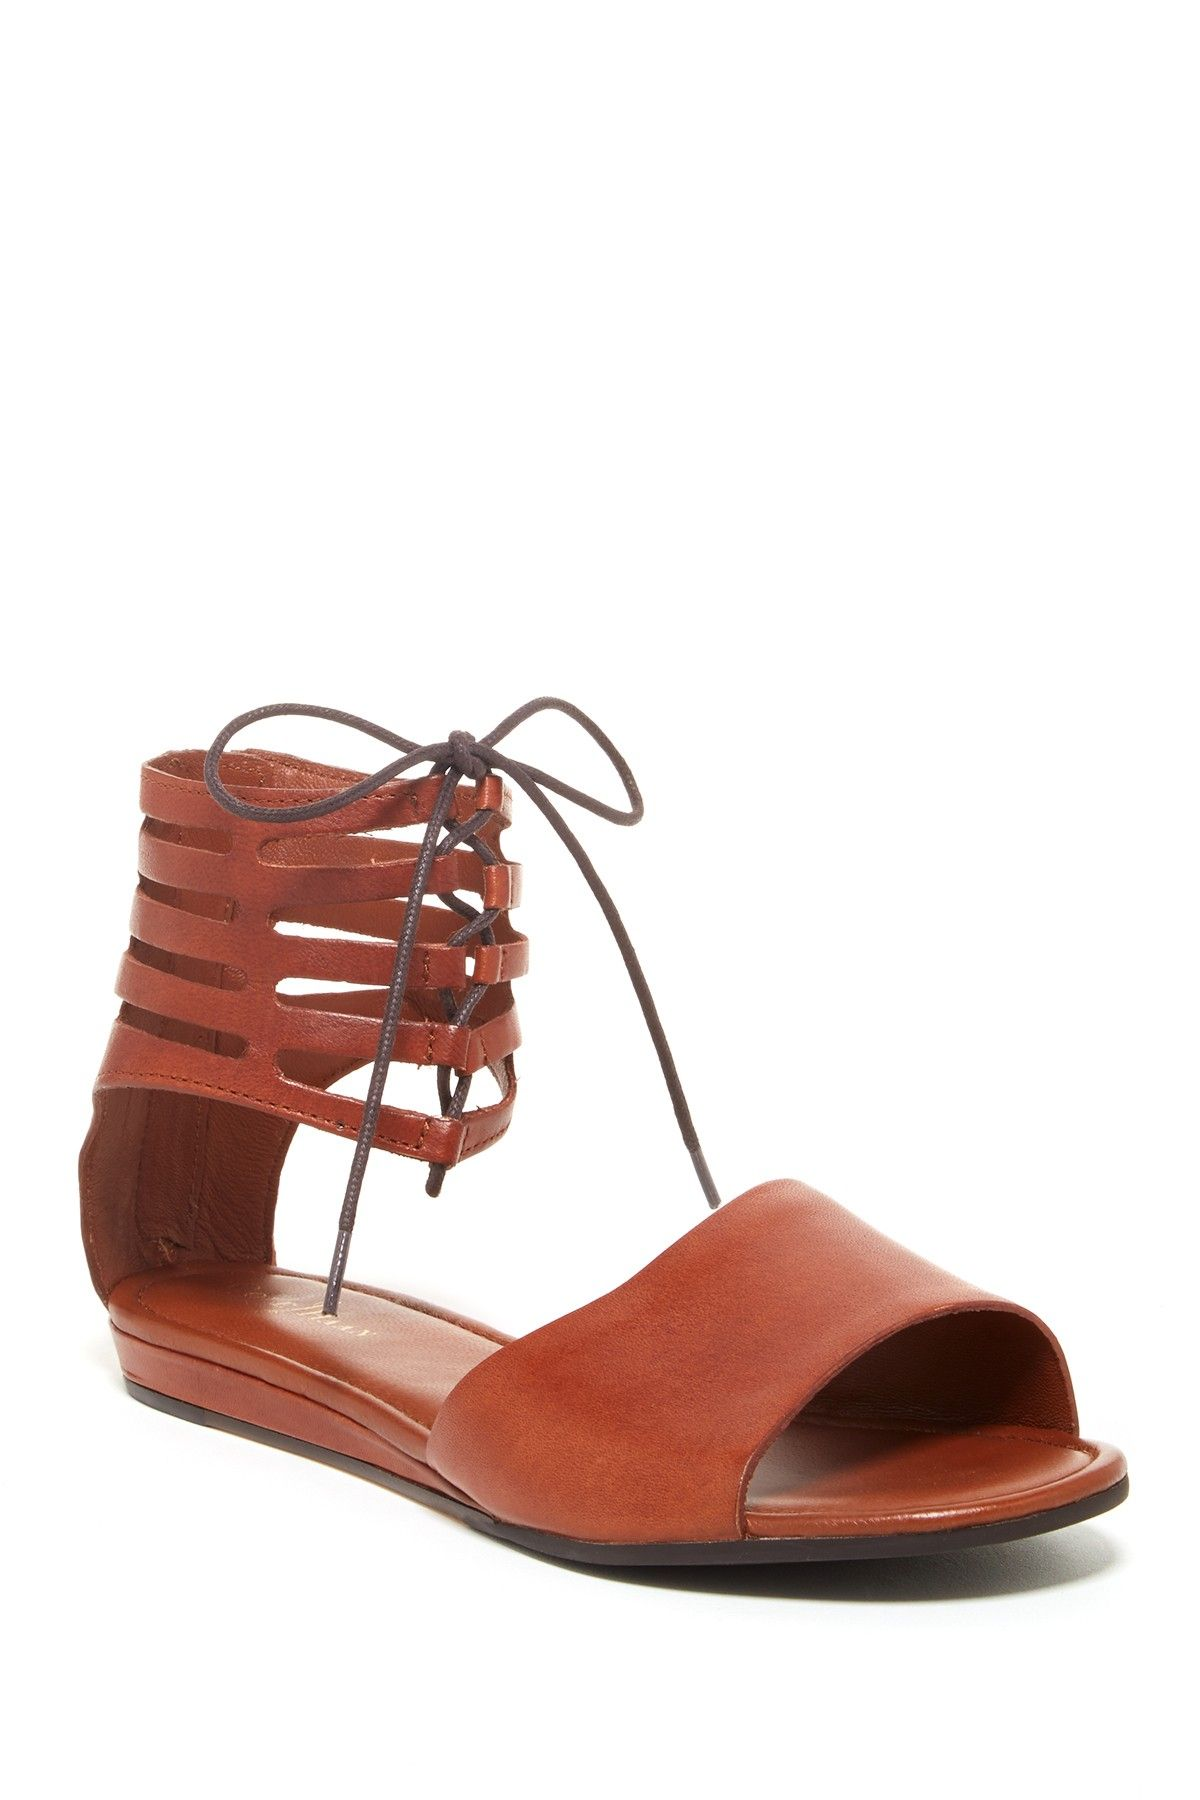 Obsessing Over These Cole Haan Sandals Shoes For Days